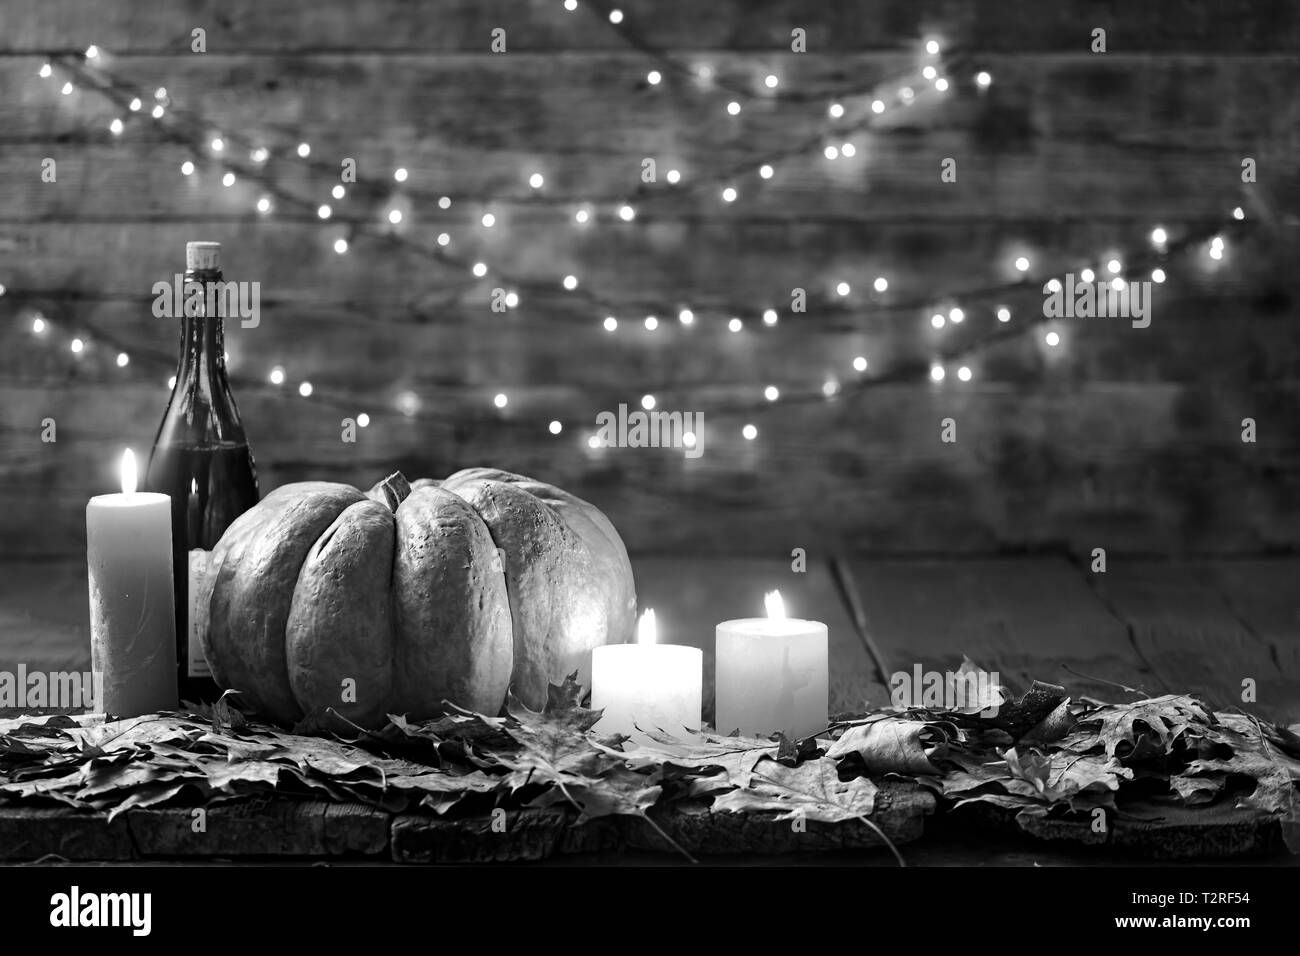 Happy Thanksgiving Day Background Wooden Table Decorated With Pumpkin Wine Candles Autumn Leaves Garland Copy Space Halloween Autumn Festival Stock Photo Alamy